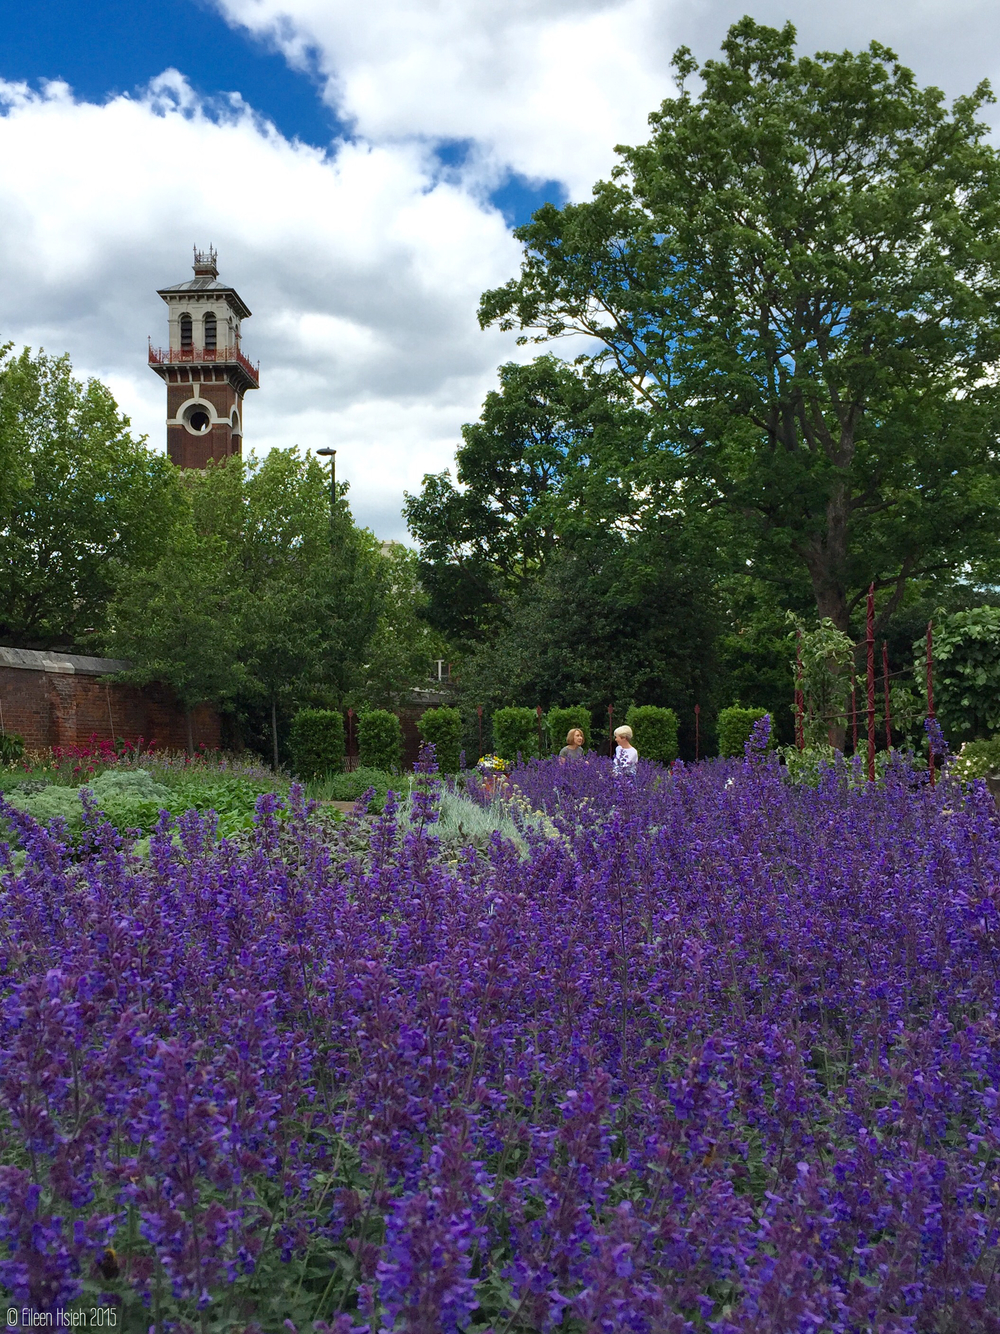 Lambeth Palace Garden London lavender followthatbug follow that bug.JPG